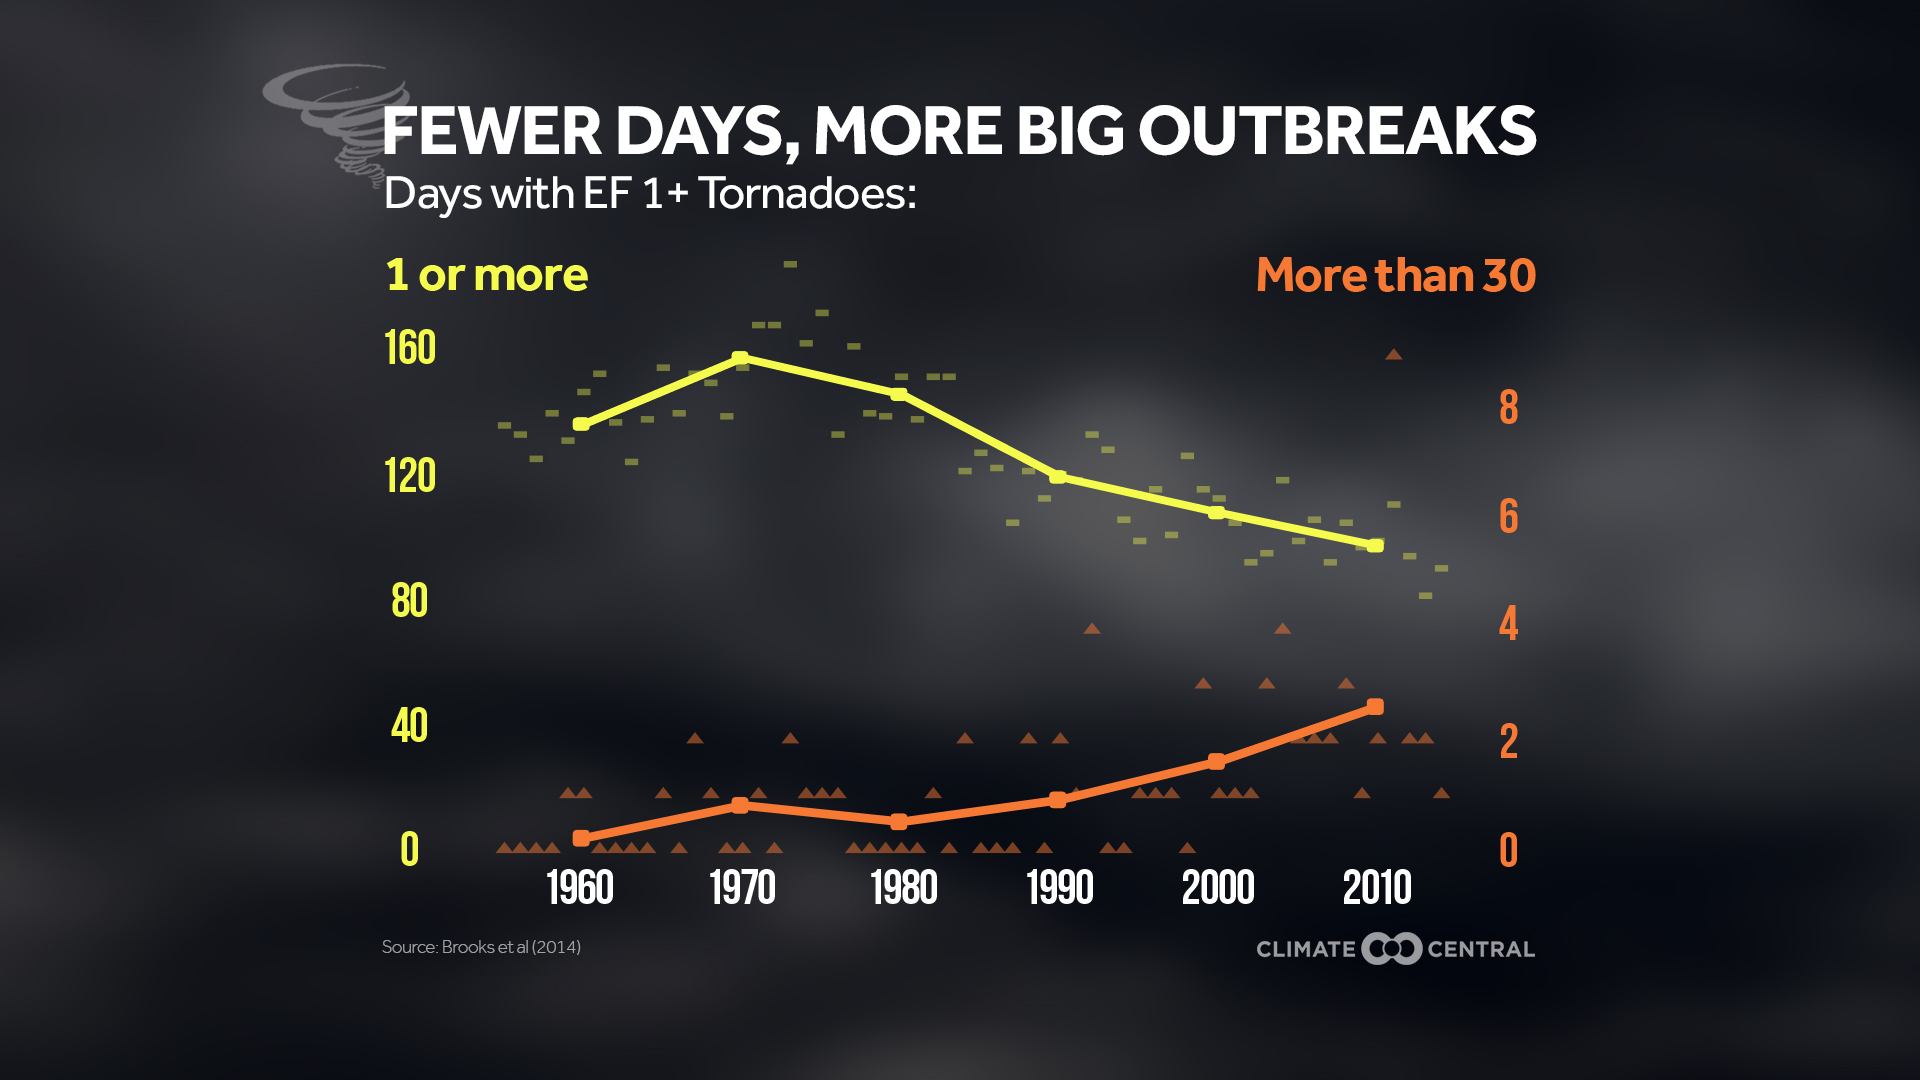 Fewer tornado days but more big outbreaks climate central